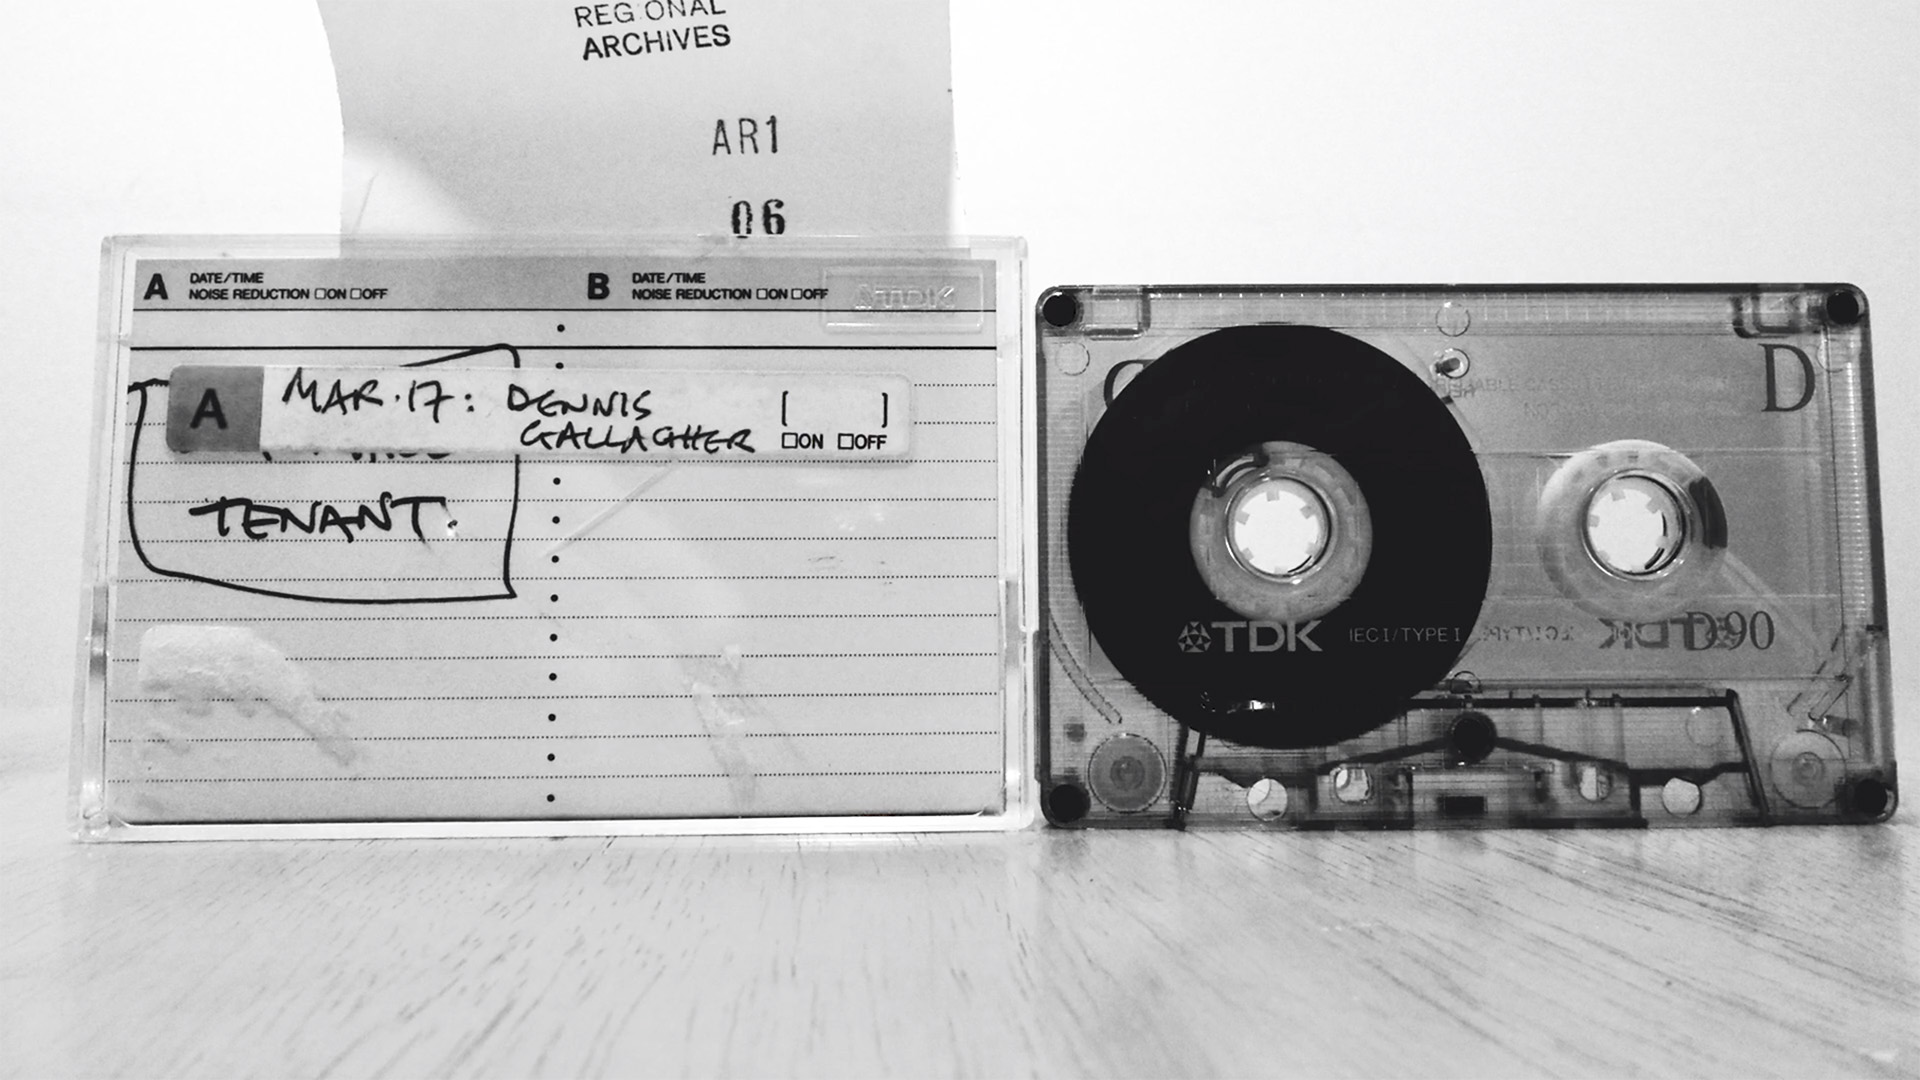 A cassette tape with labels indicating it is from a regional archive, black and white